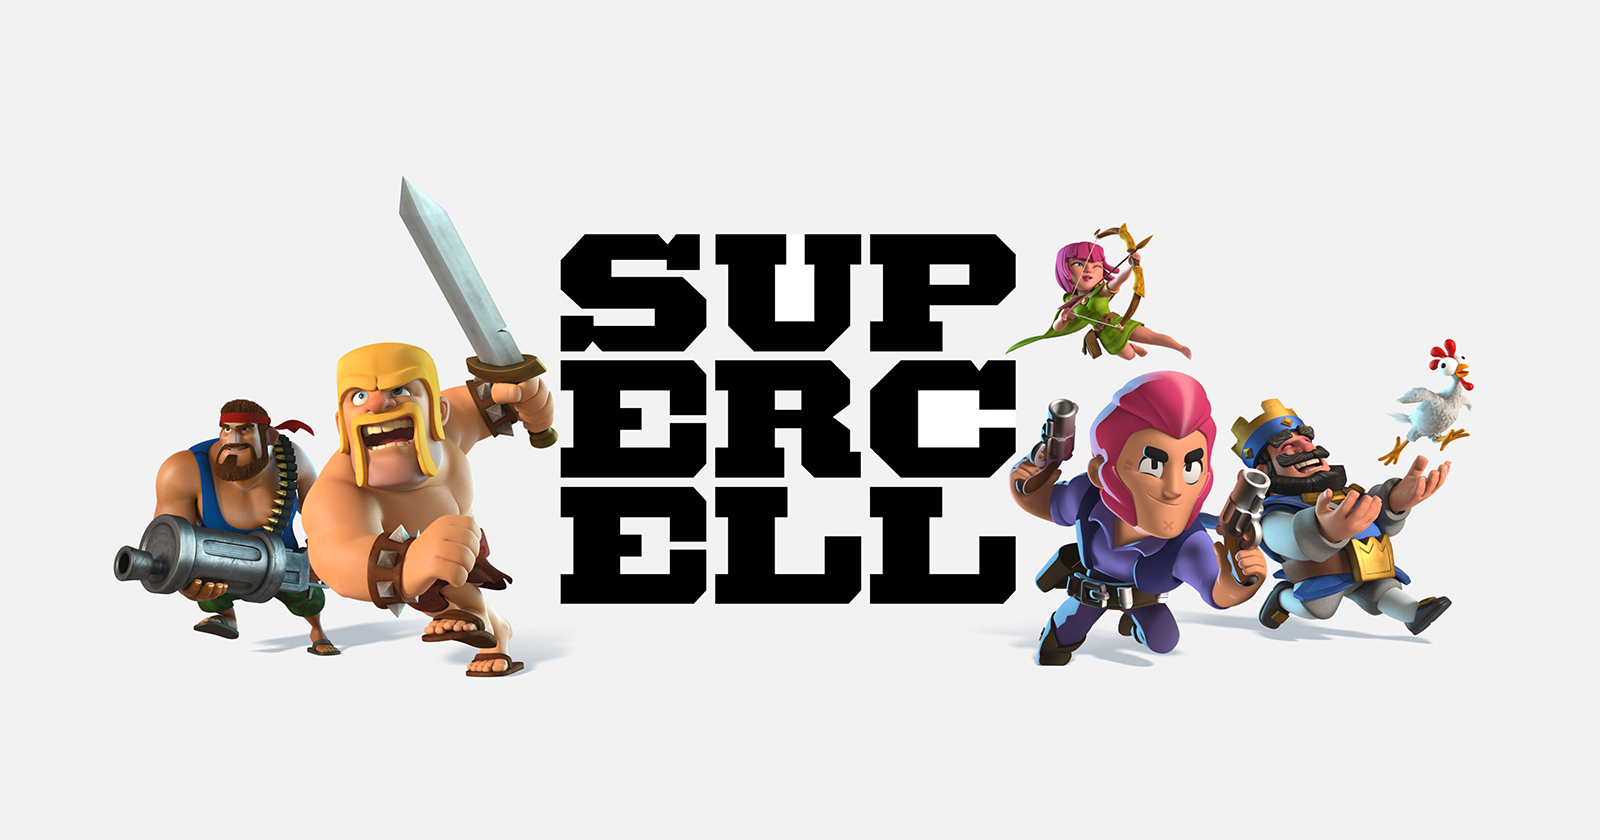 Fan Content Policy Supercell